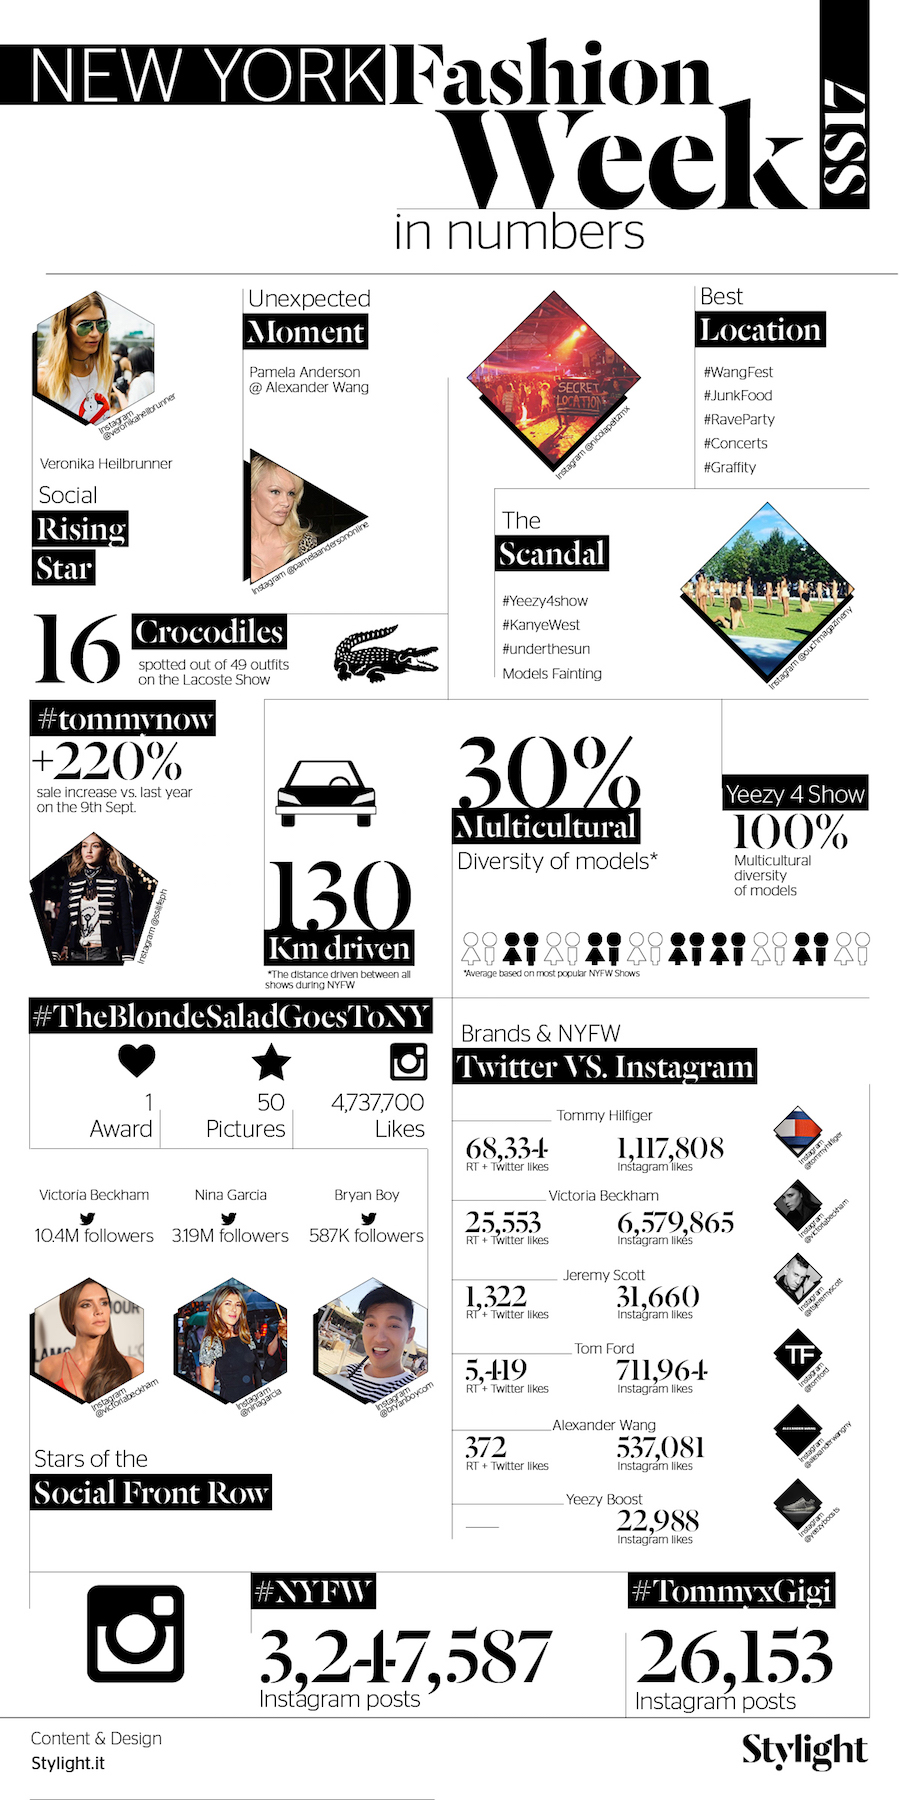 Stylight - New York Fashion Week in Numeri - Infografica